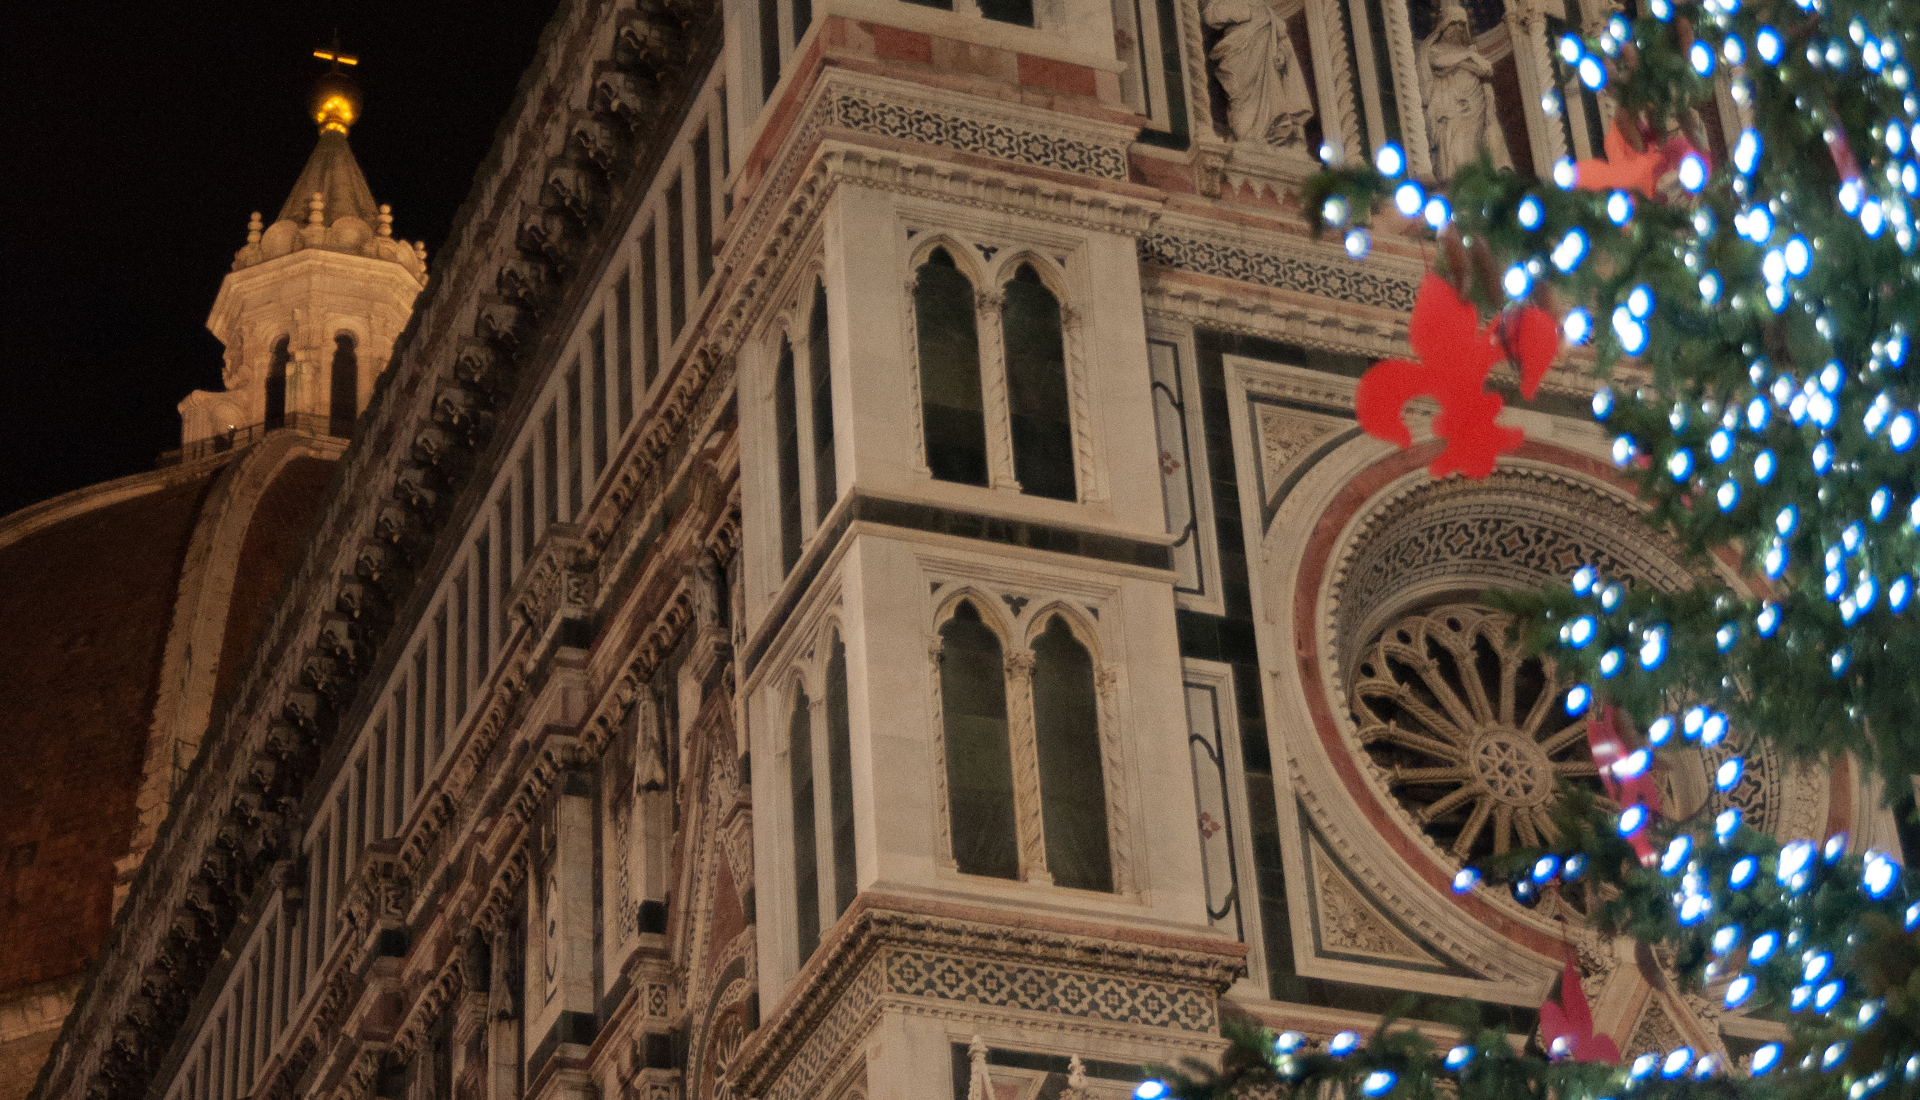 Christmas In Florence Italy.Bed And Breakfast In Florence For Christmas Offers 2019